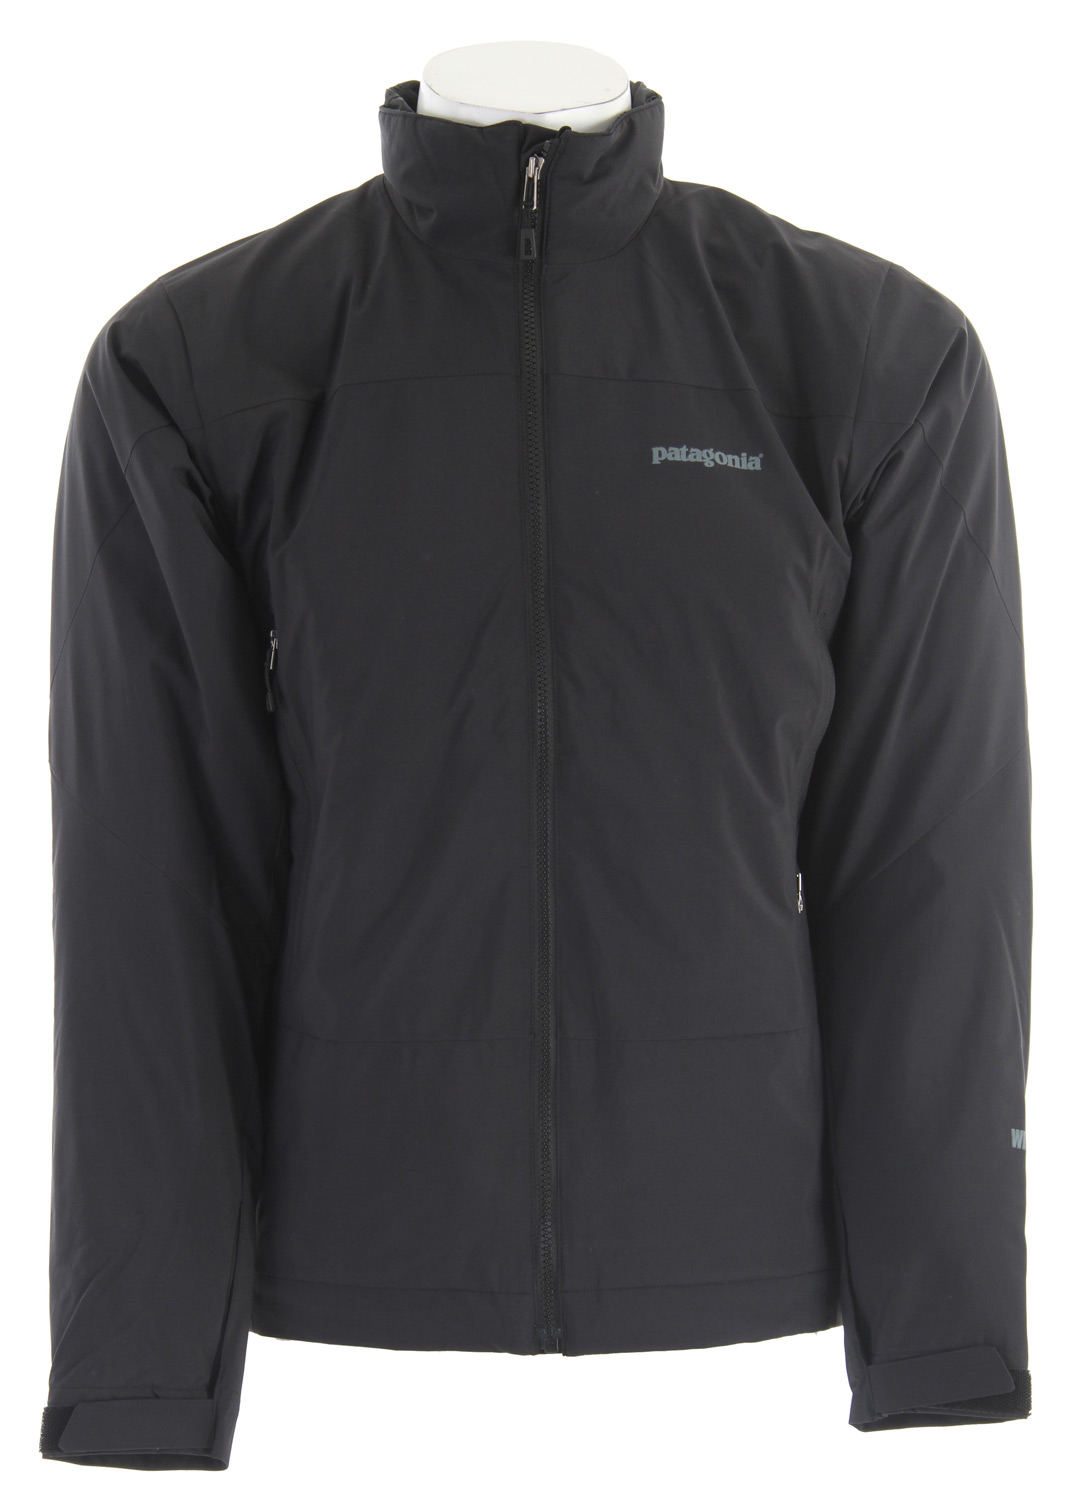 A lightweight low-bulkinsulated jacket that combines a supple WINDSTOPPER the Patagonia Solar Wind Jacket has an Insulated Shell exterior with 60-g Primaloft Eco insulation for superior warmth and total wind protectionKey Features of the Patagonia Solar Wind Jacket: WINDSTOPPER Insulated Shell fabric combined with Primaloft insulation is warm, light, compressible and highly weather-resistant Interior quilting stabilizes insulation Pockets: Harness- and pack-compatible chest pocket configuration with reverse-coil zippers; internal zippered security pocket Touch Point System embeds cord locks in the hood and hem for quick adjustments to seal out rain and snow (patented) Cuffs have a low-profile closure and pleated gusset Regular fit (17 oz) 482 g Fabric: Shell: 2.8-oz WINDSTOPPER 100% nylon. Insulation: 60-g PrimaLoft Eco polyester. Lining: 1.4-oz 20-denier 100% polyester ripstop - $175.95